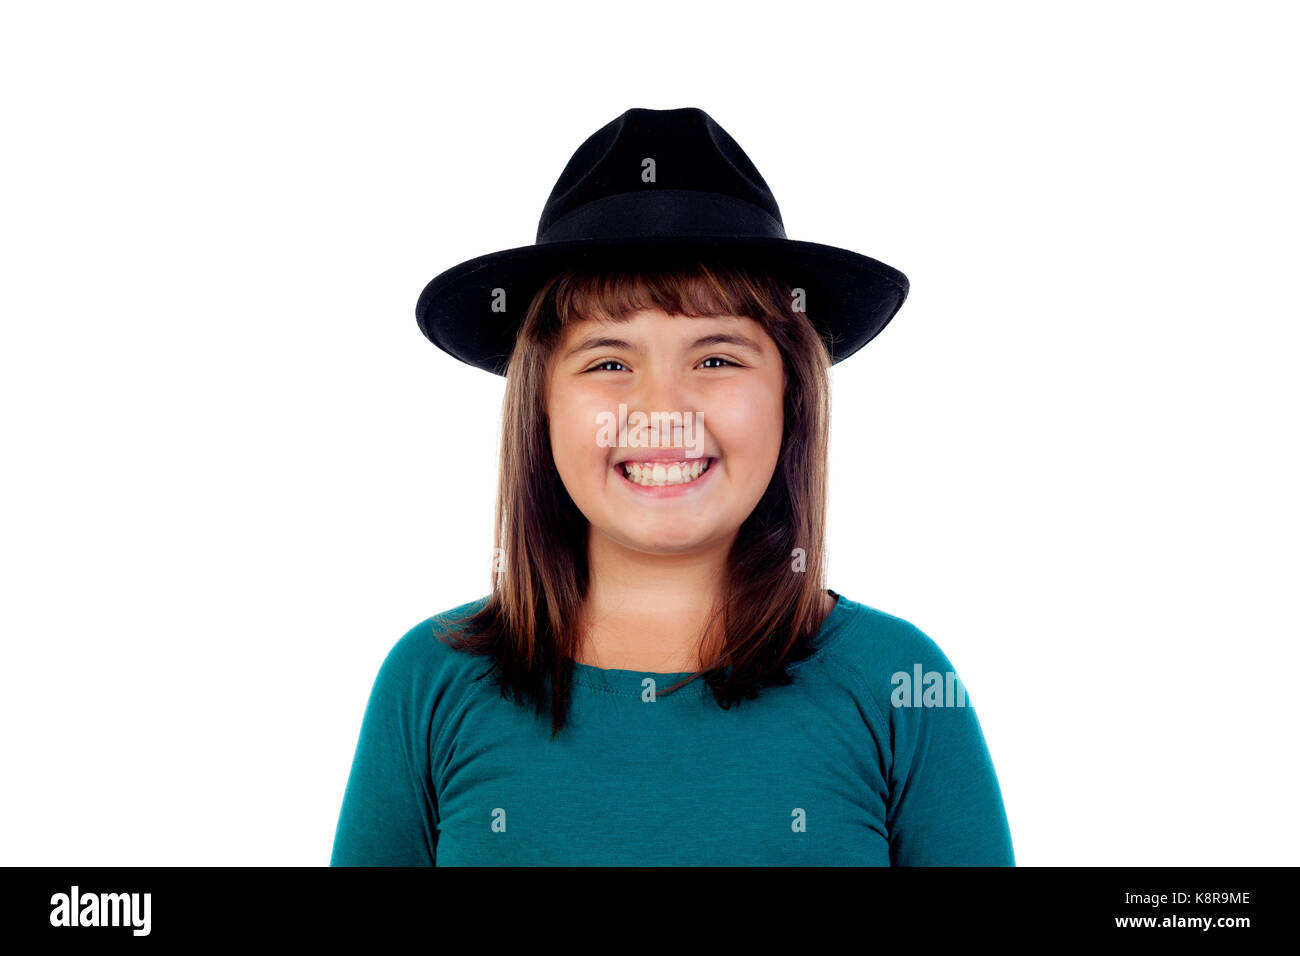 Adorable small girl with black hat isolated on a white background Stock Photo